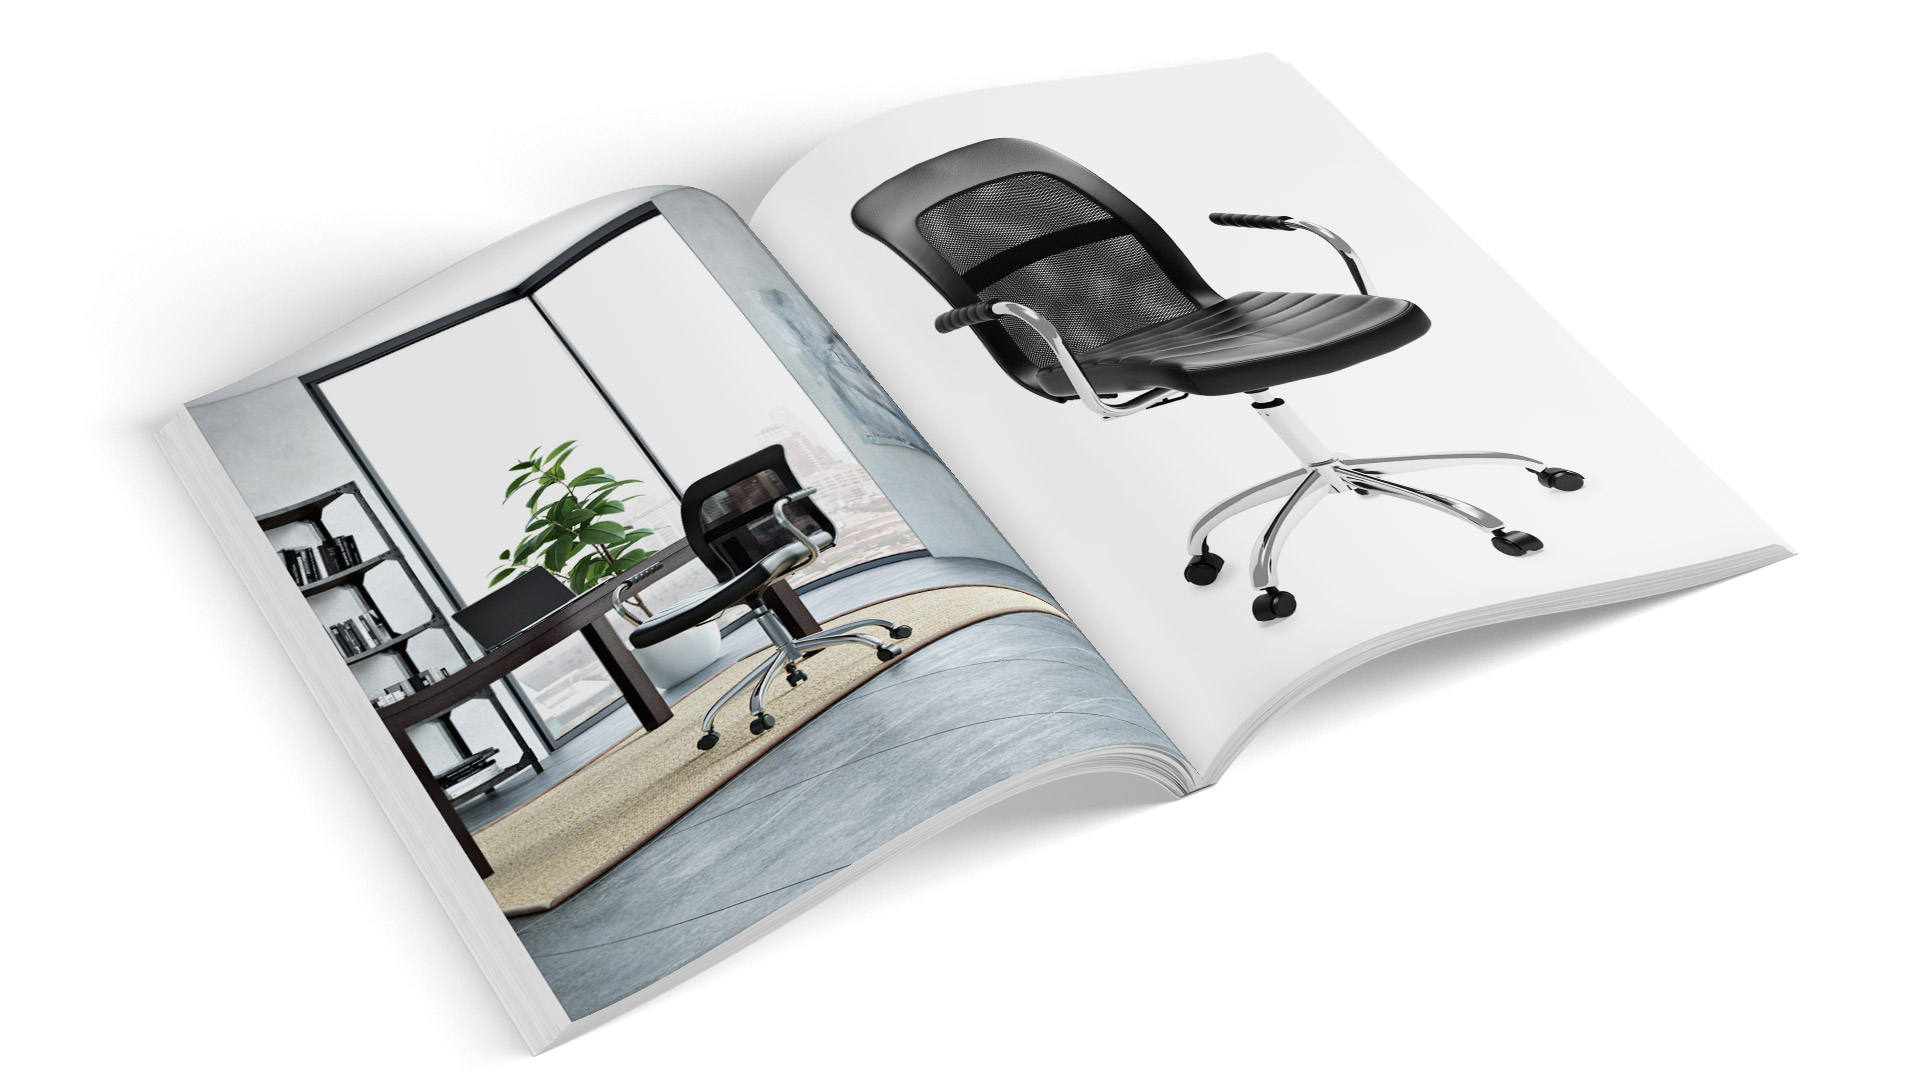 Chair 3D Renderings in a Print Catalog Spread